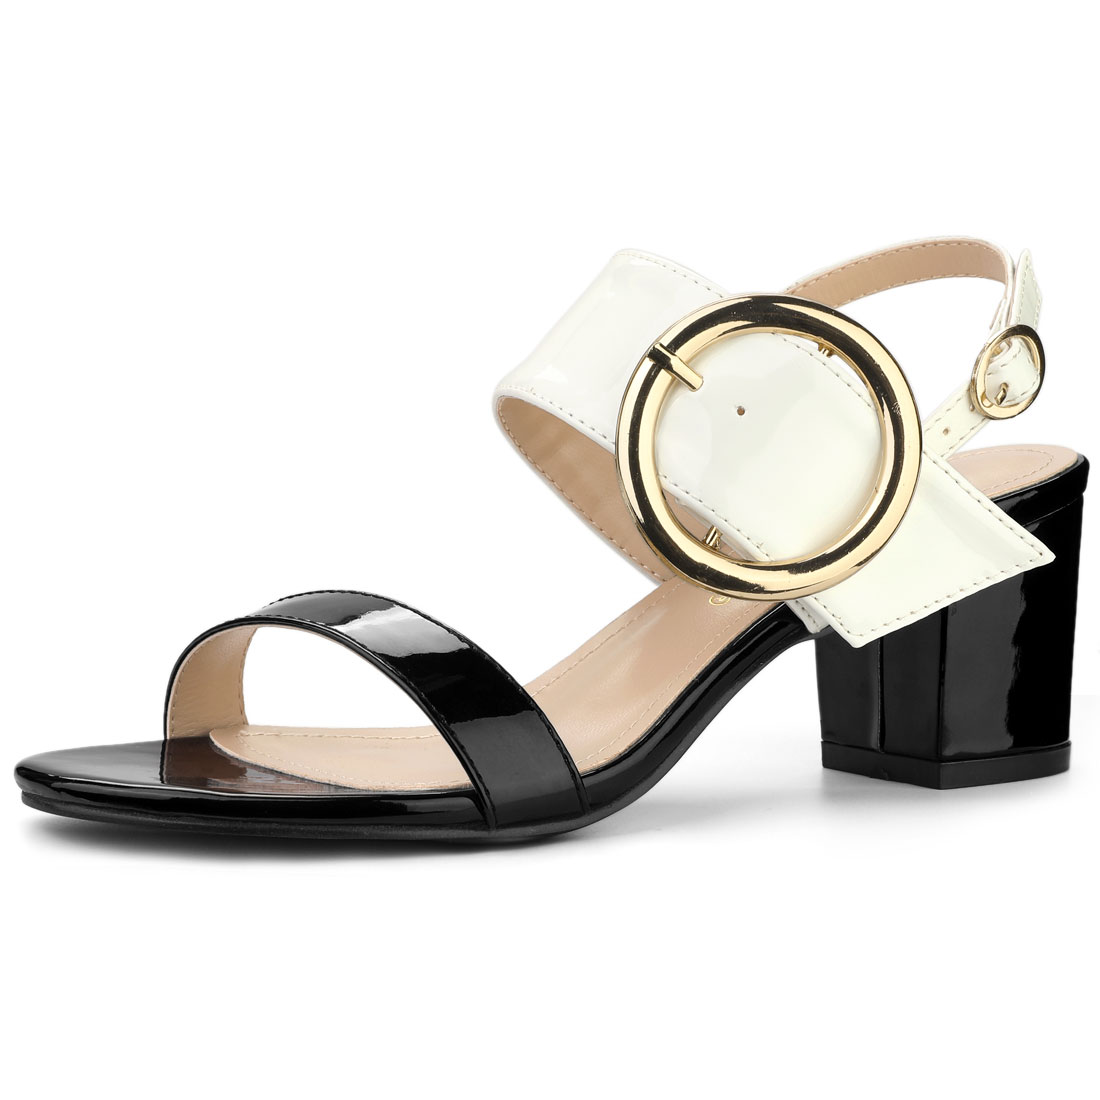 Allegra K Women's Slingback Block High Heel Sandals Black White US 6